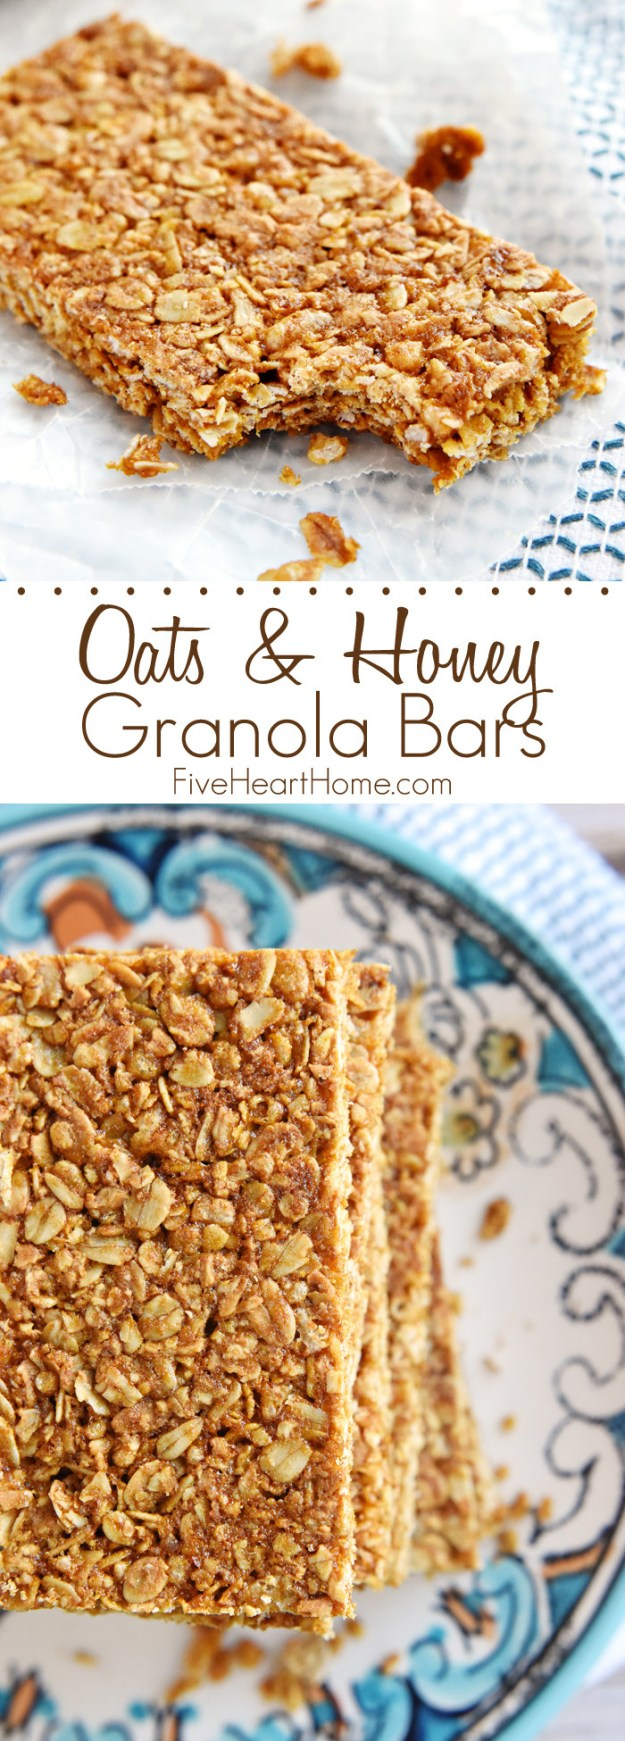 Crumble oats and nuts together to make tasty granola bars.